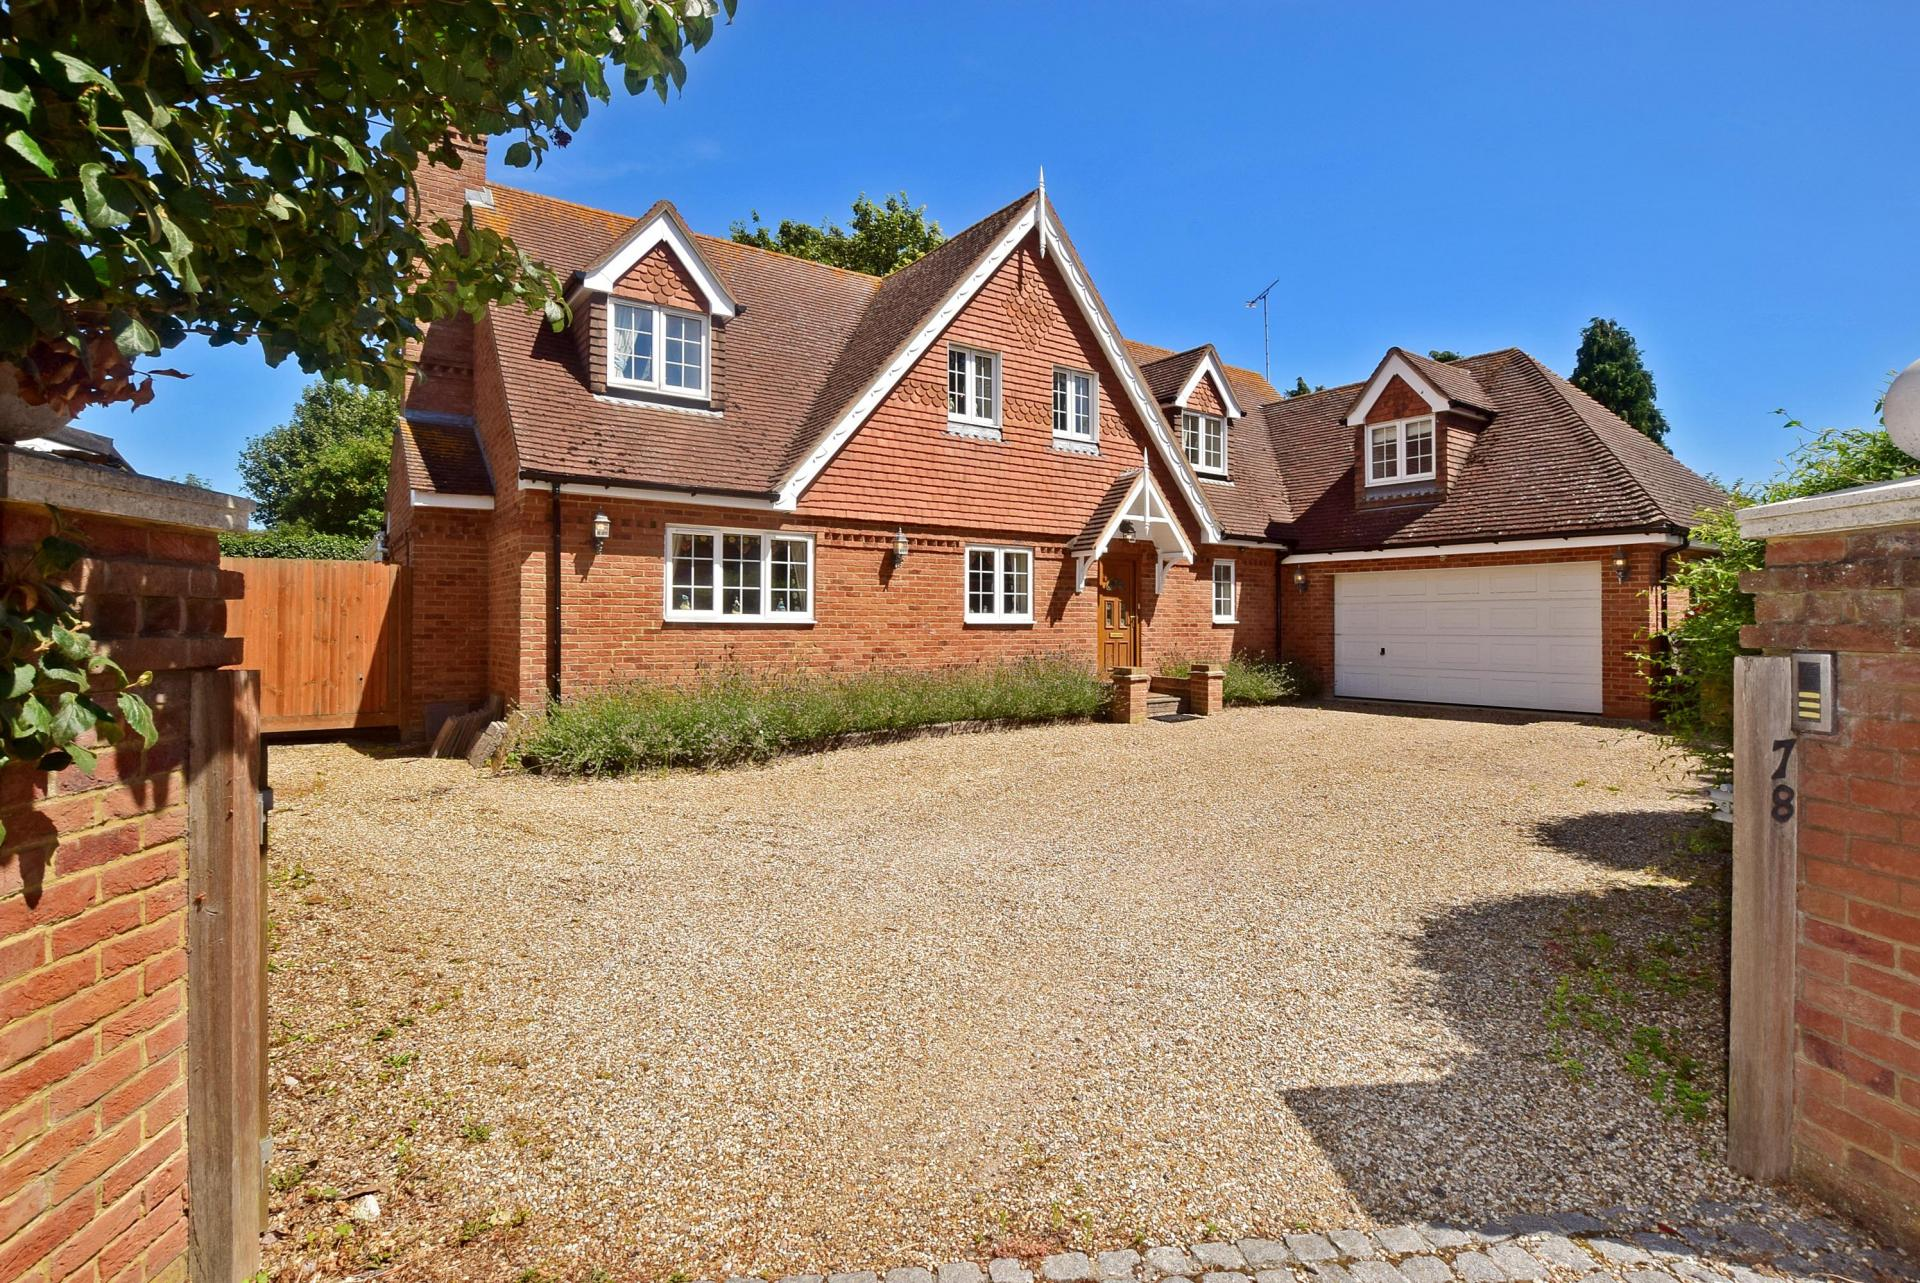 5 Bedroom House For Sale In Broadstairs